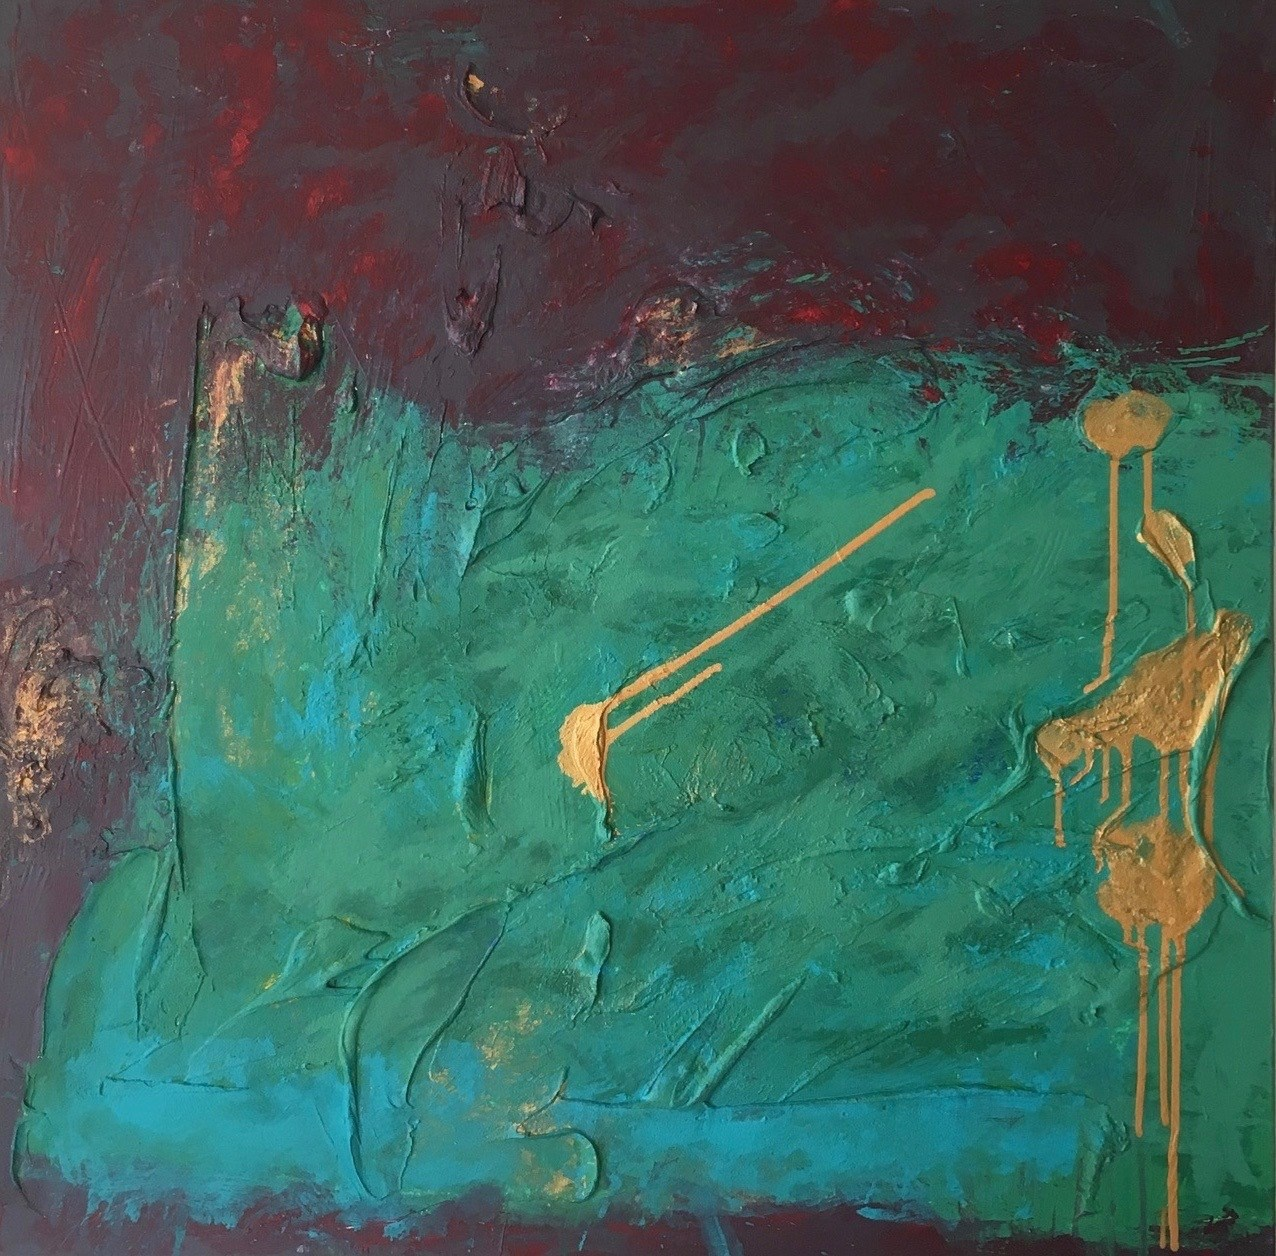 I shot my faith, original Abstract Acrylic Painting by Andrés Montenegro